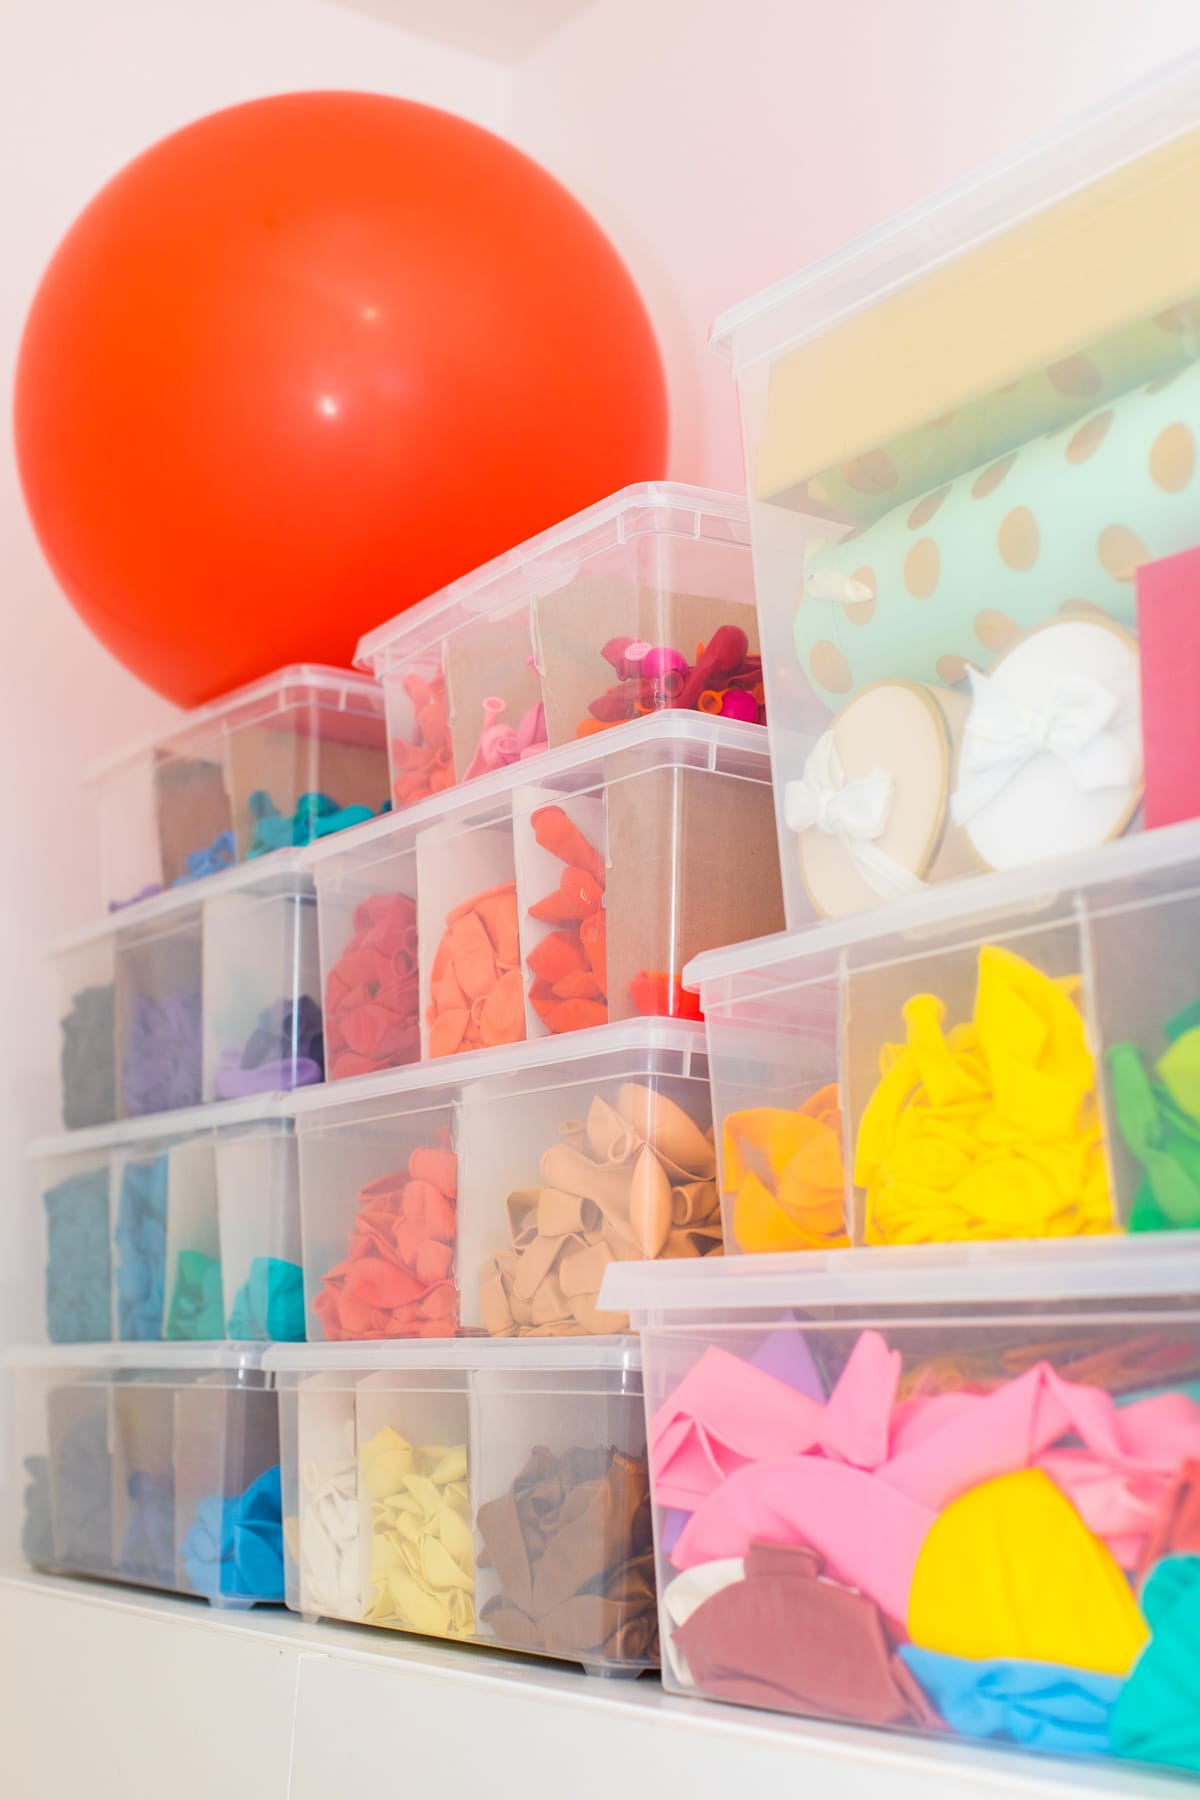 balloon organization - A Peek Inside My New Studio & Craft Closet by top Houston lifestyle blogger Ashley Rose of Sugar & Cloth #design #organizing #interiors #craft #craftroom